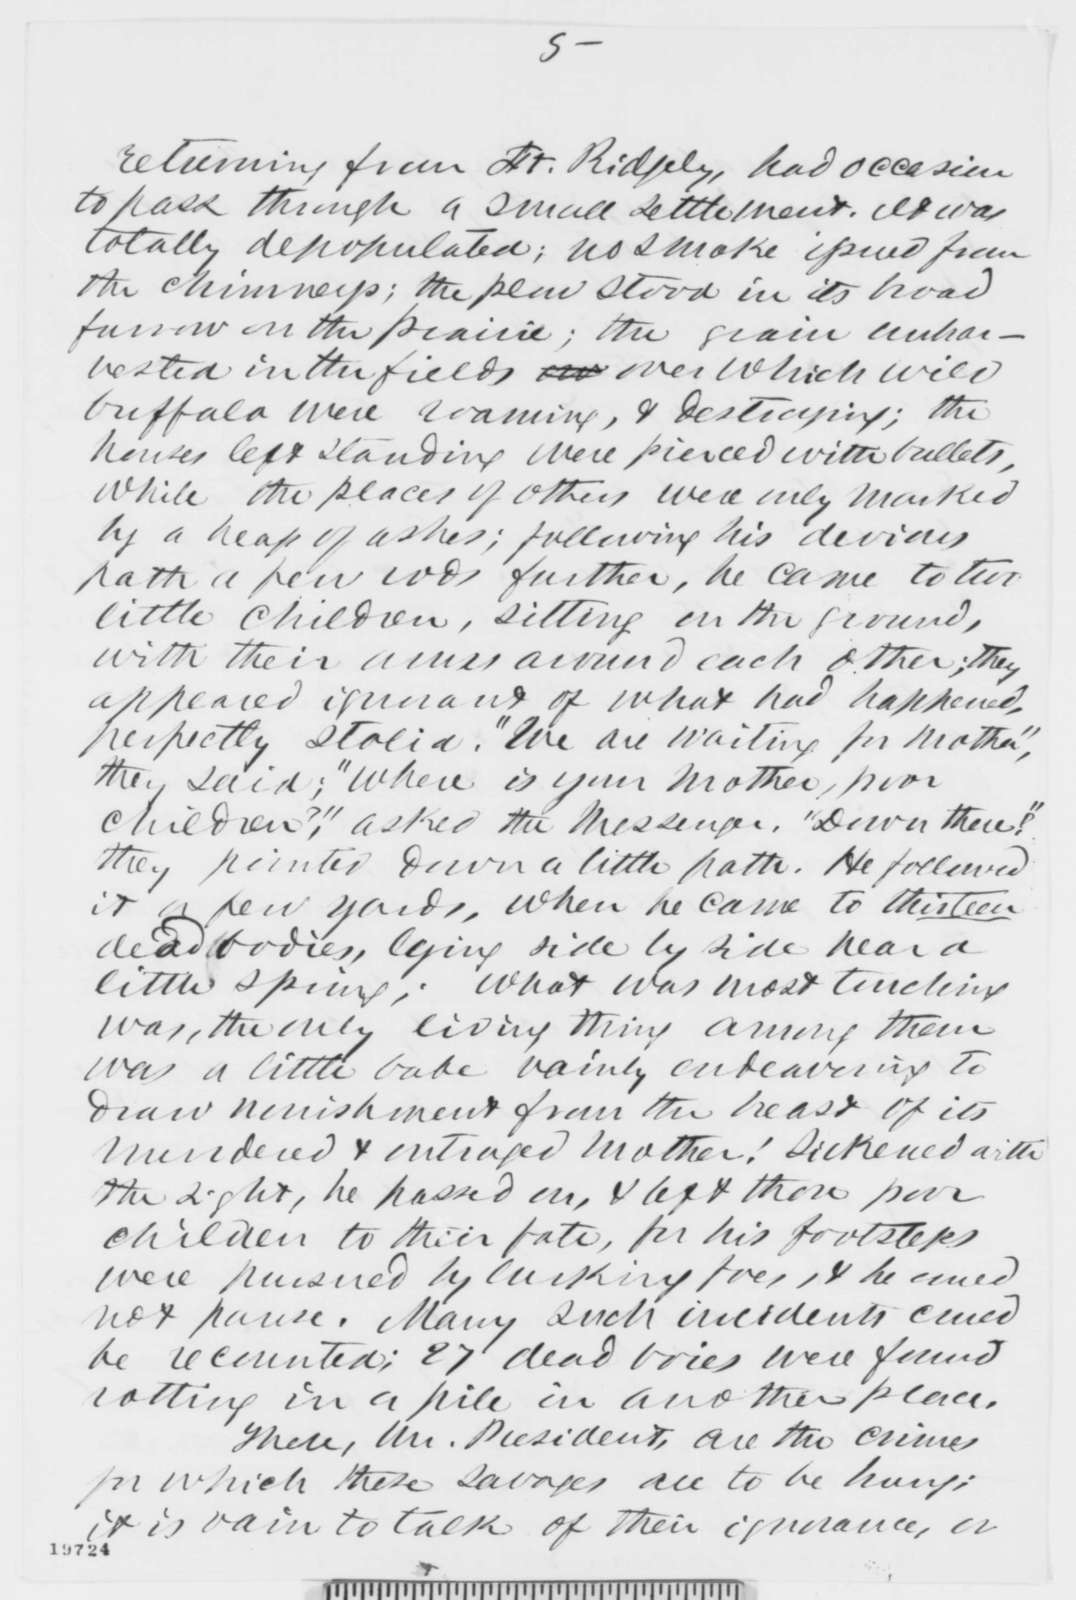 Thaddeus Williams to Abraham Lincoln, Saturday, November 22, 1862  (Opposes the pardoning of Sioux sentenced to death)